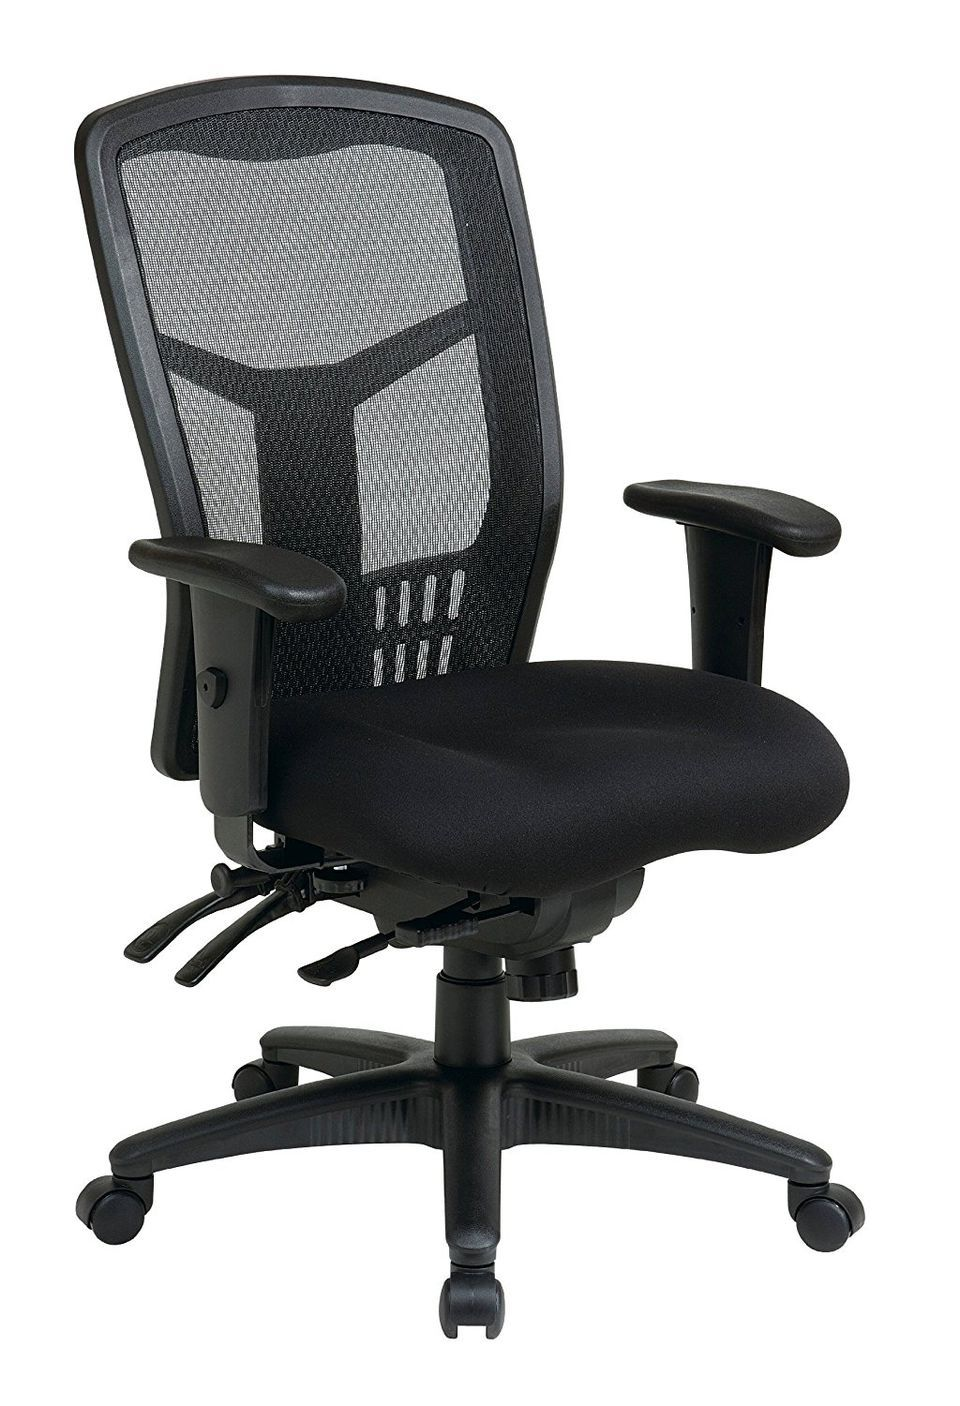 55+ Ergo Office Chairs   Best Home Office Furniture Check More At Http:/